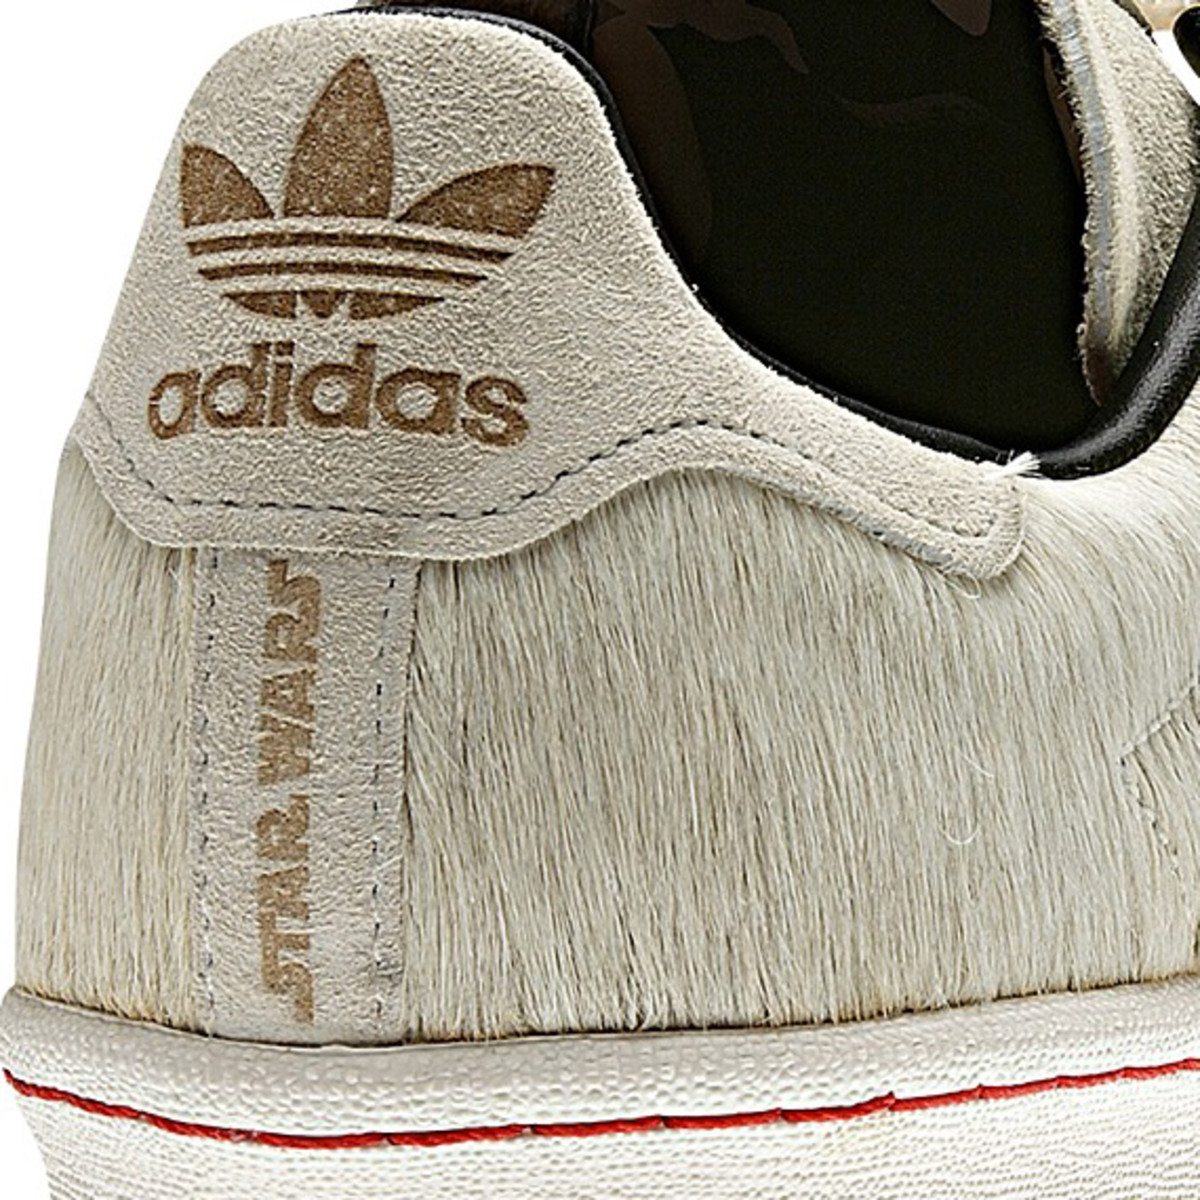 star-wars-adidas-originals-campus-80s-wampa-06